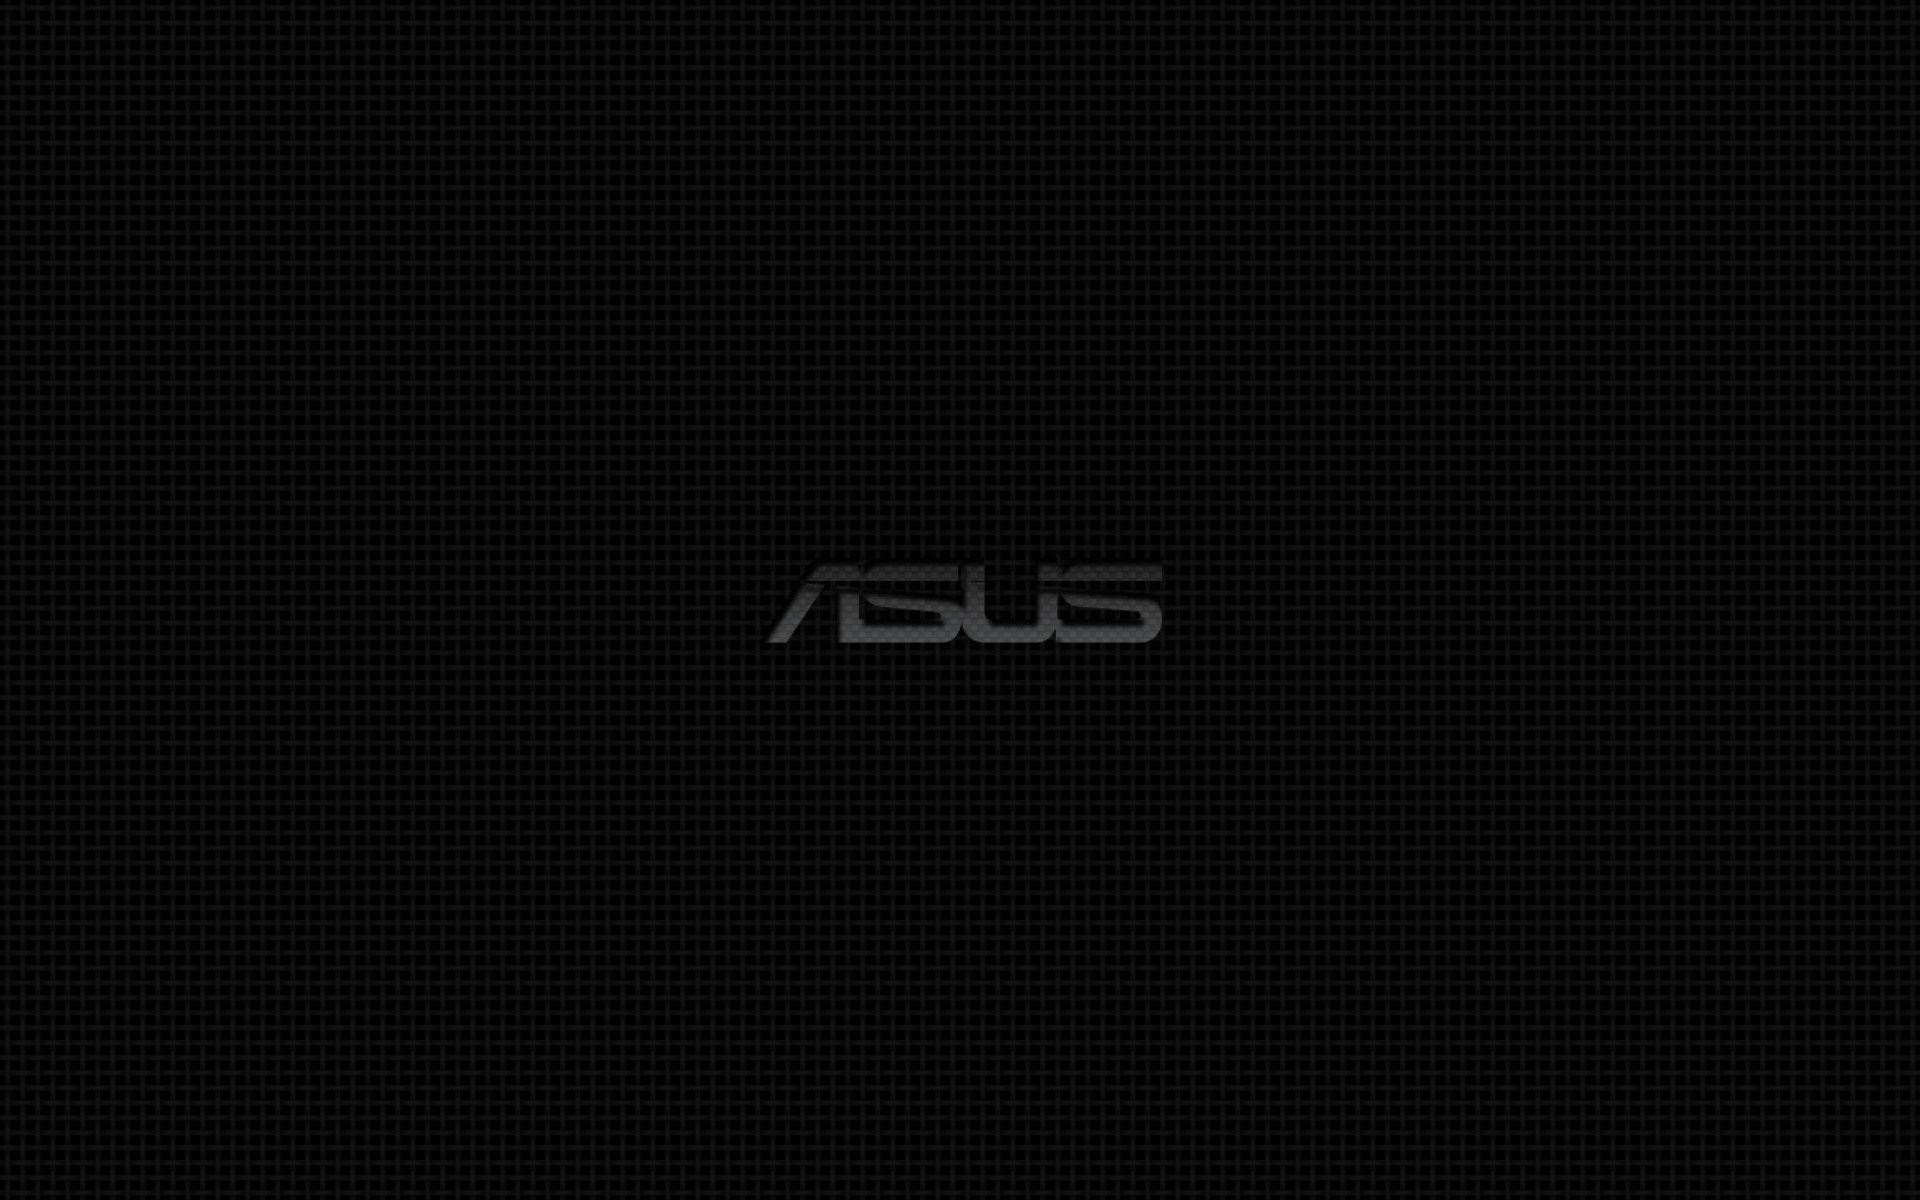 Wallpaper Of Asus Wallpaper Hd For Android